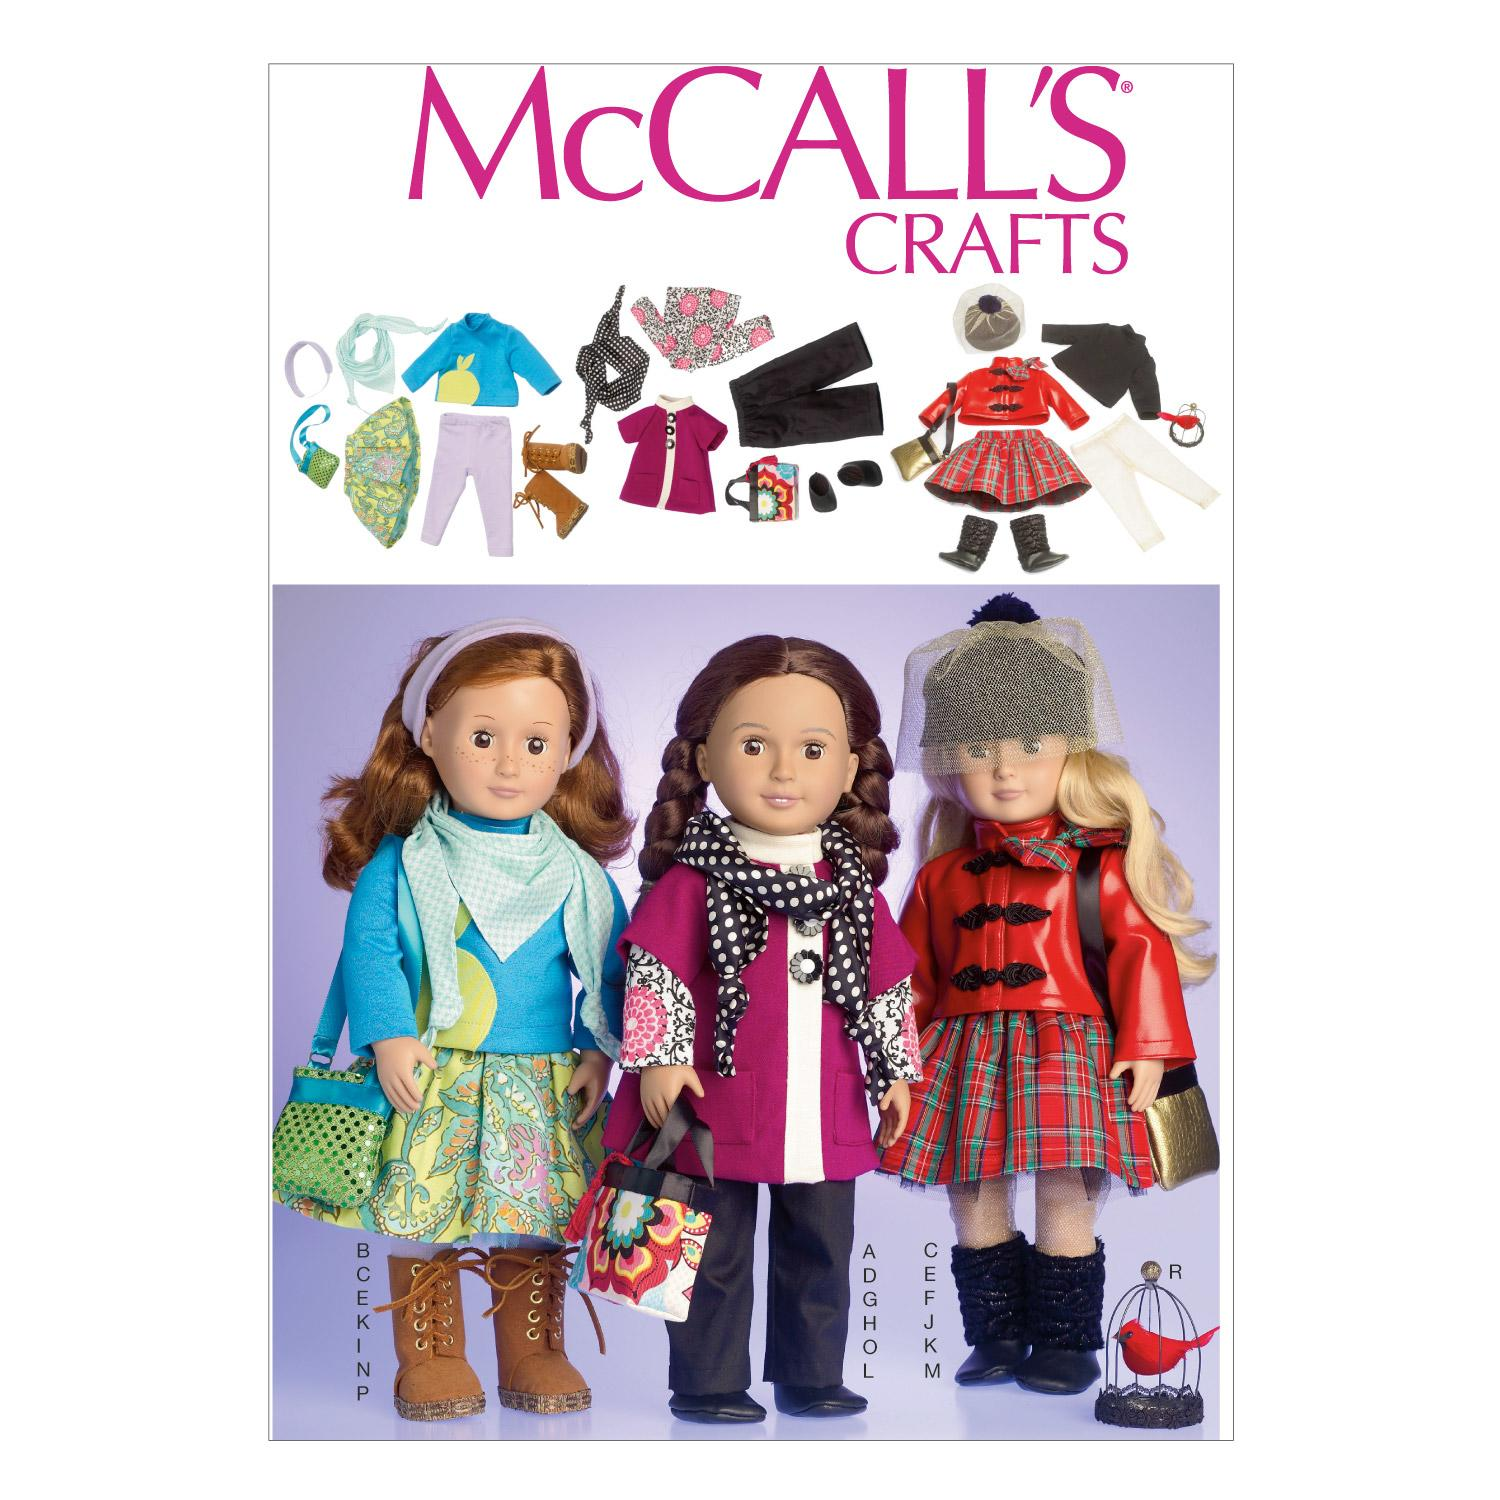 McCalls M7006 Crafts/Dolls/Pets